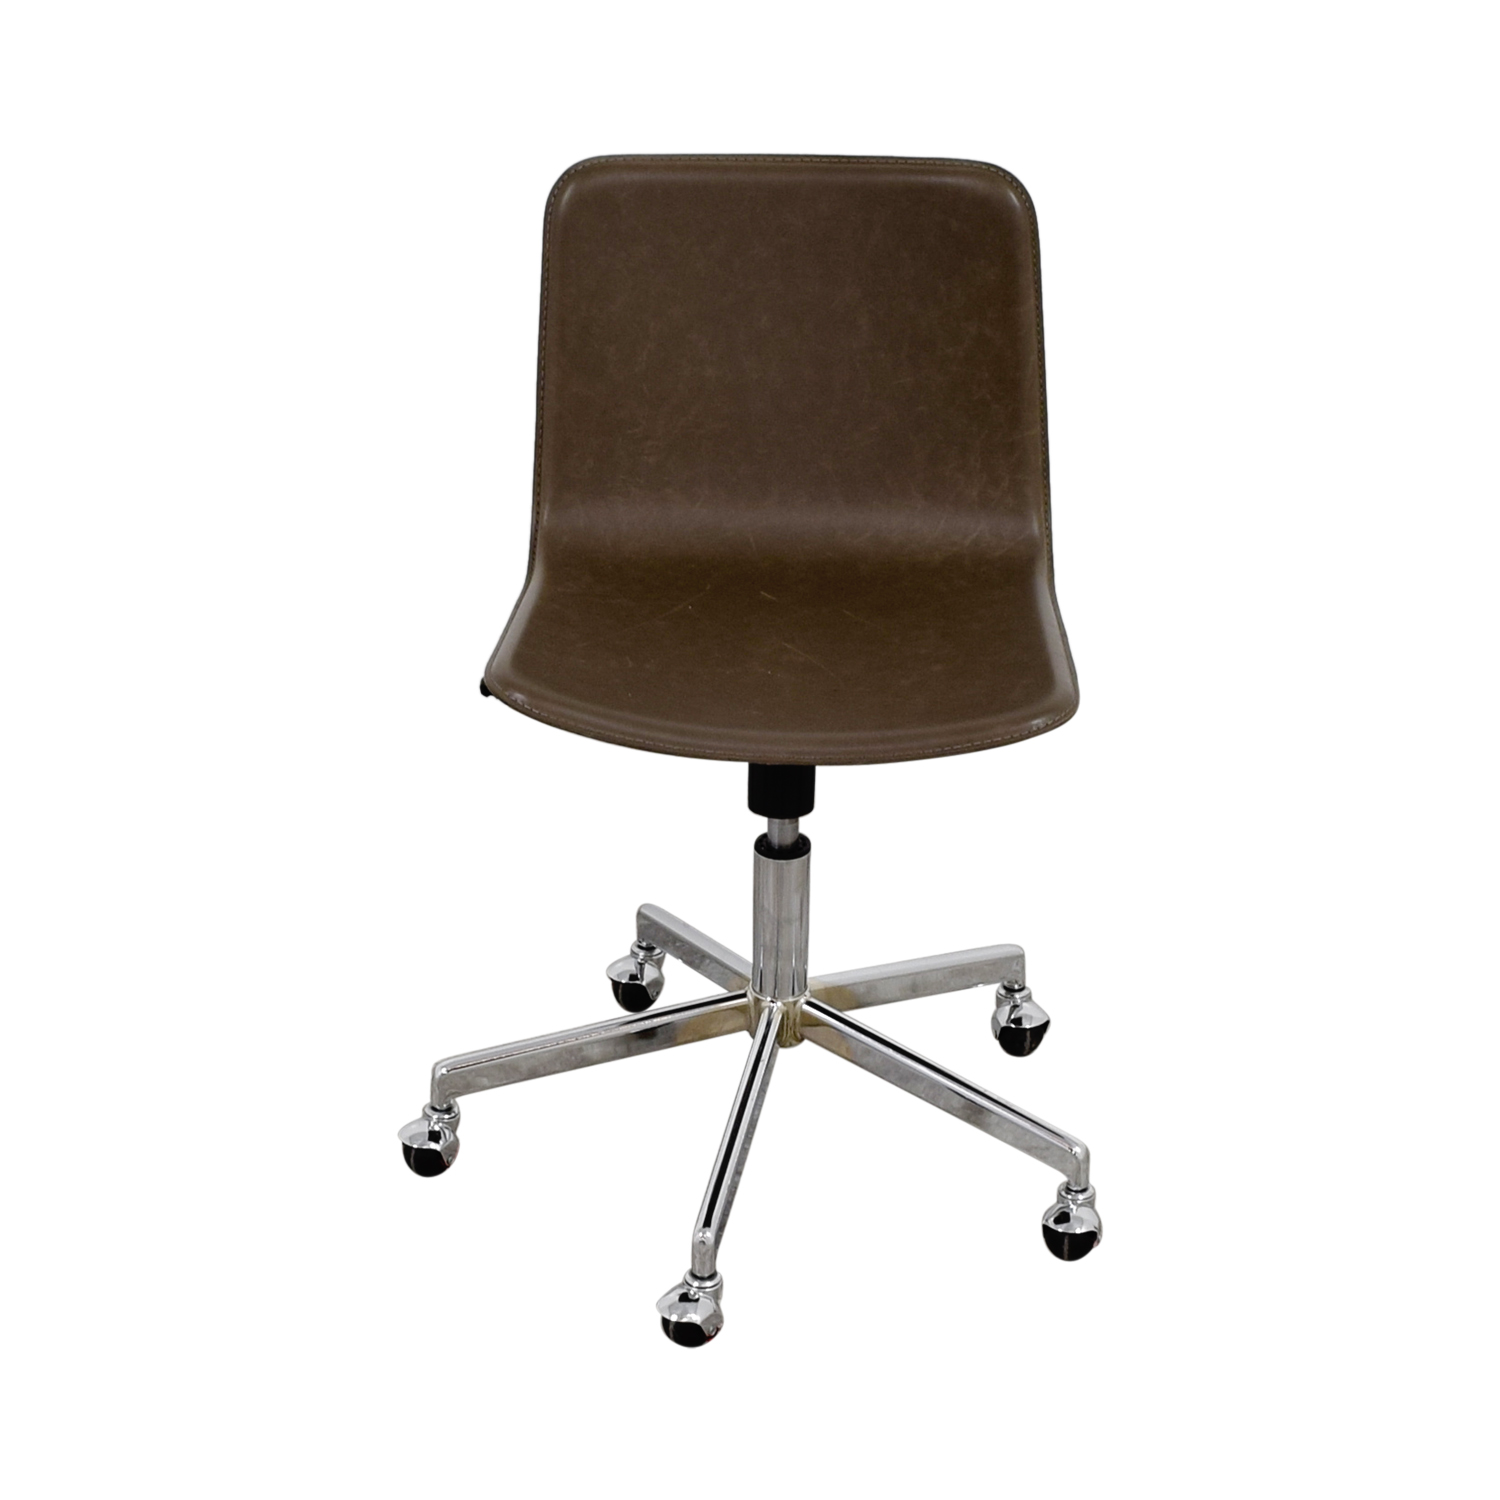 83% OFF - CB2 CB2 Grey Leather Adjustable Office Chair on Castors ...